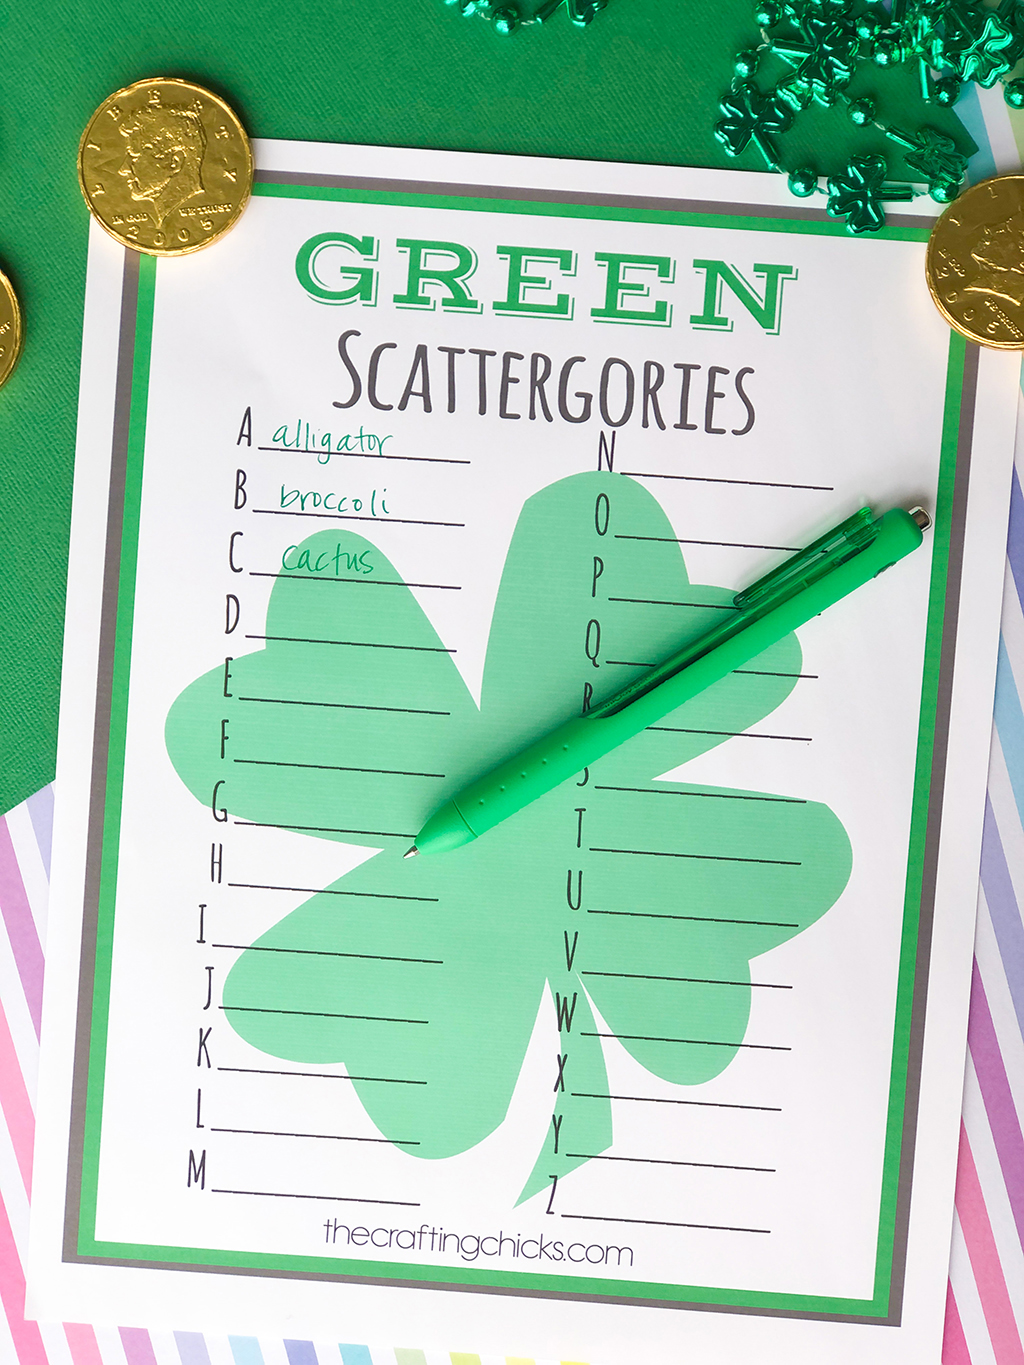 St. Patrick's Day GREEN Scattergories *Free Printable on green and rainbow background with gold coins